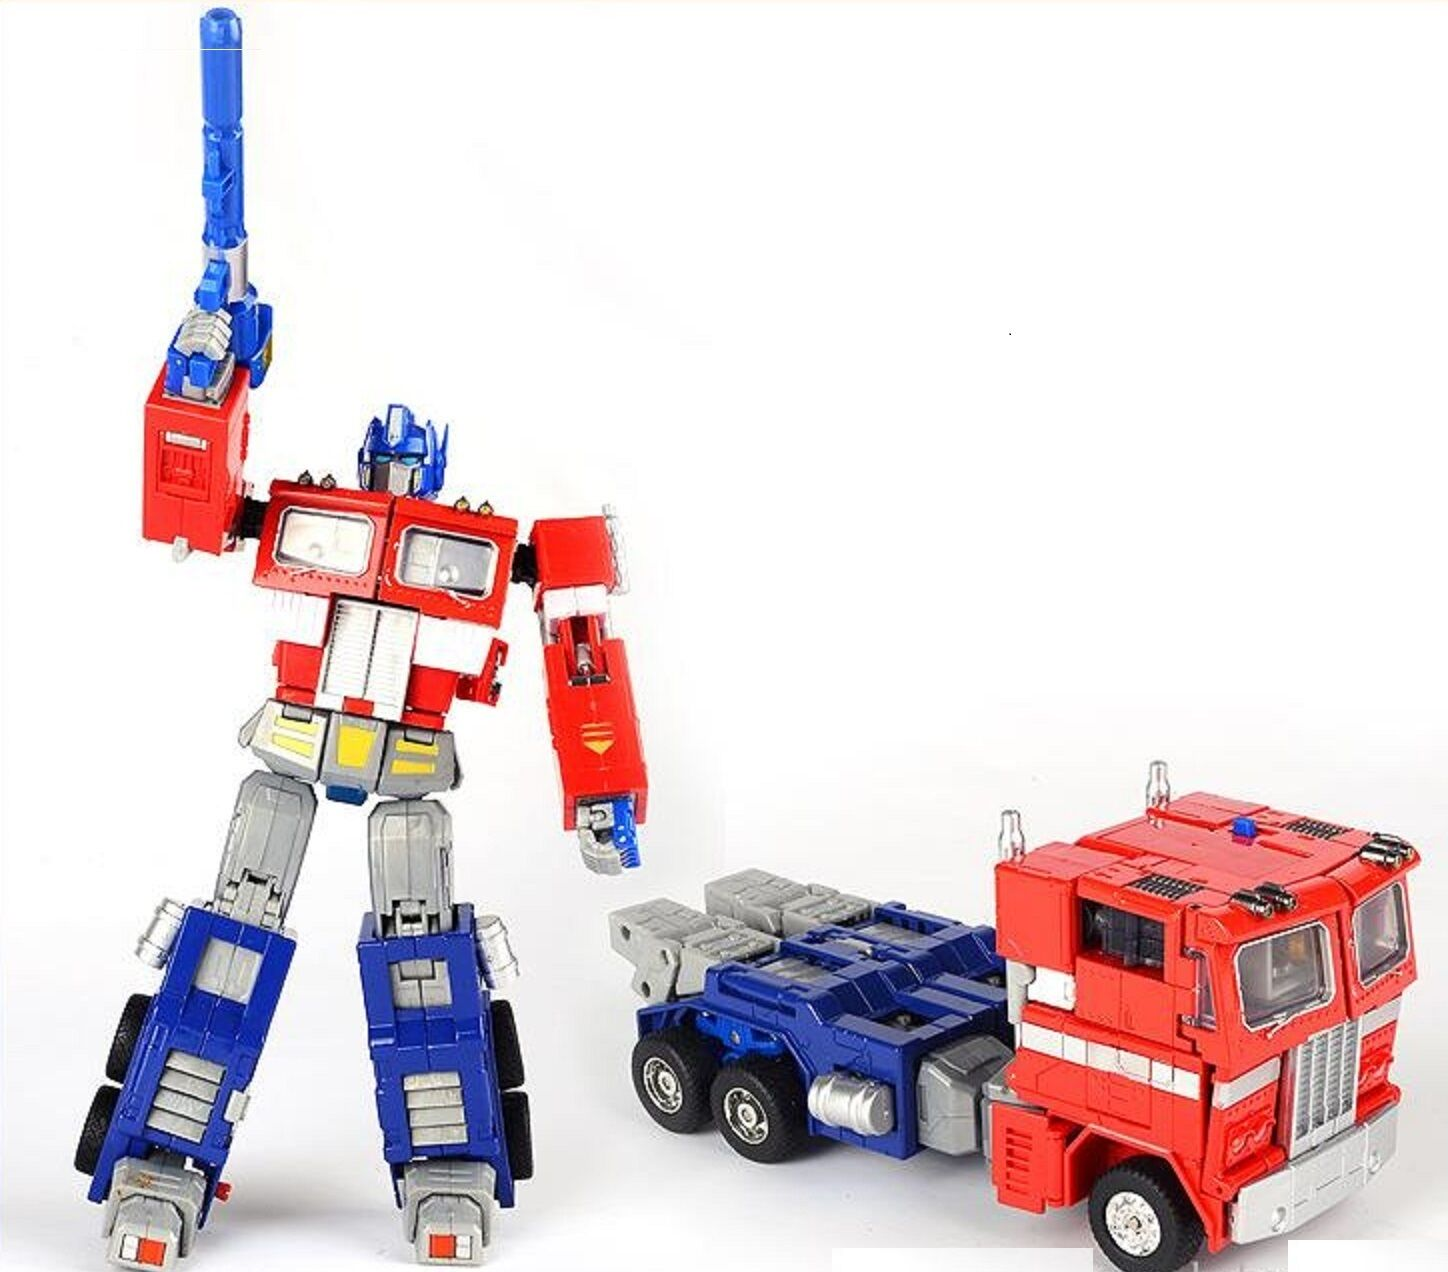 Transformers Optimus Prime Metal MP01 Master Piece With Trailer Ages 5+ New Toy